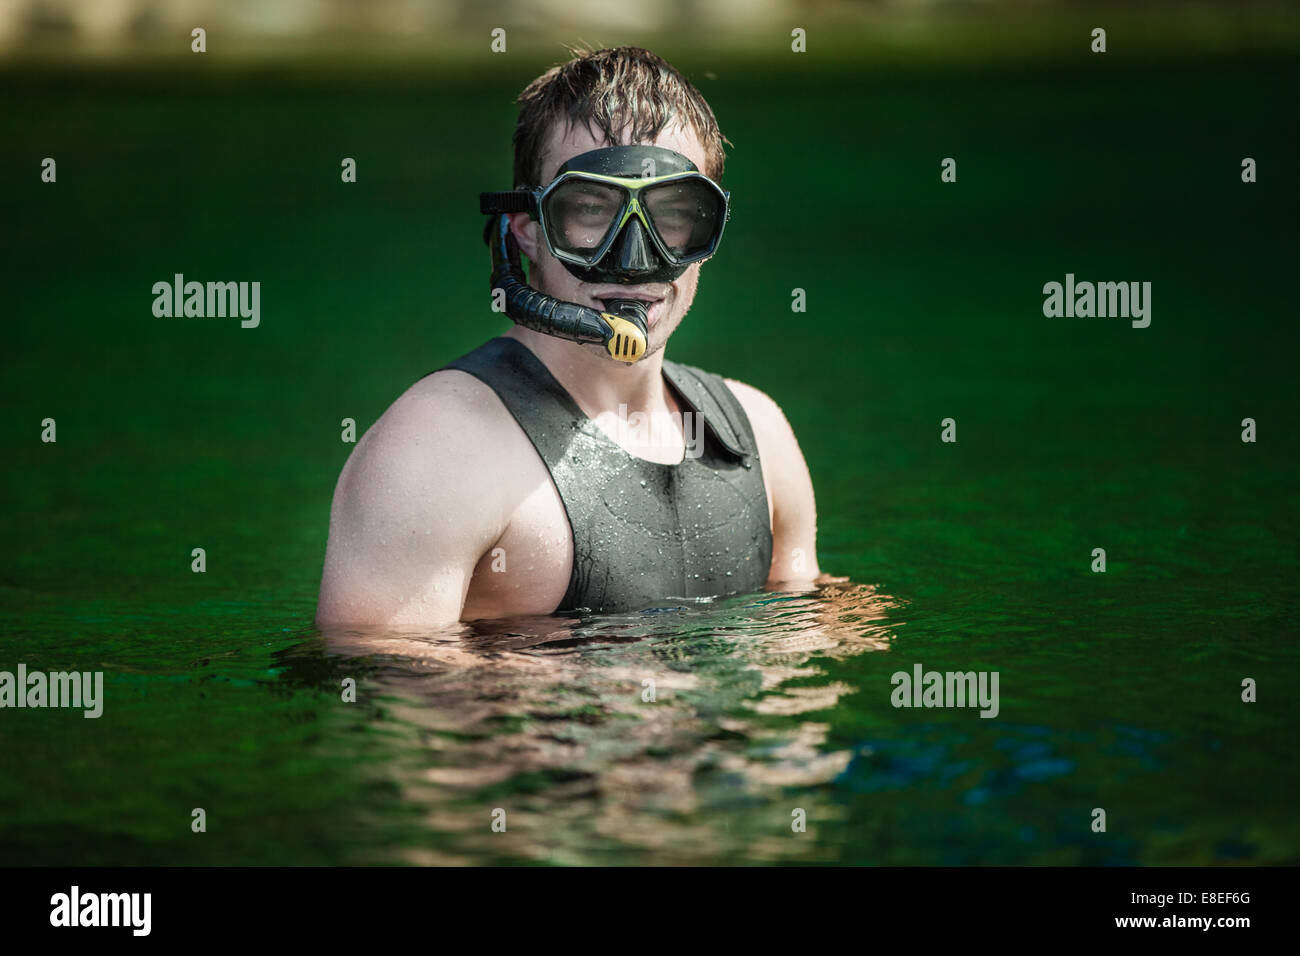 Funny Young Adult Snorkeling in a river with Goggles and Scuba. - Stock Image